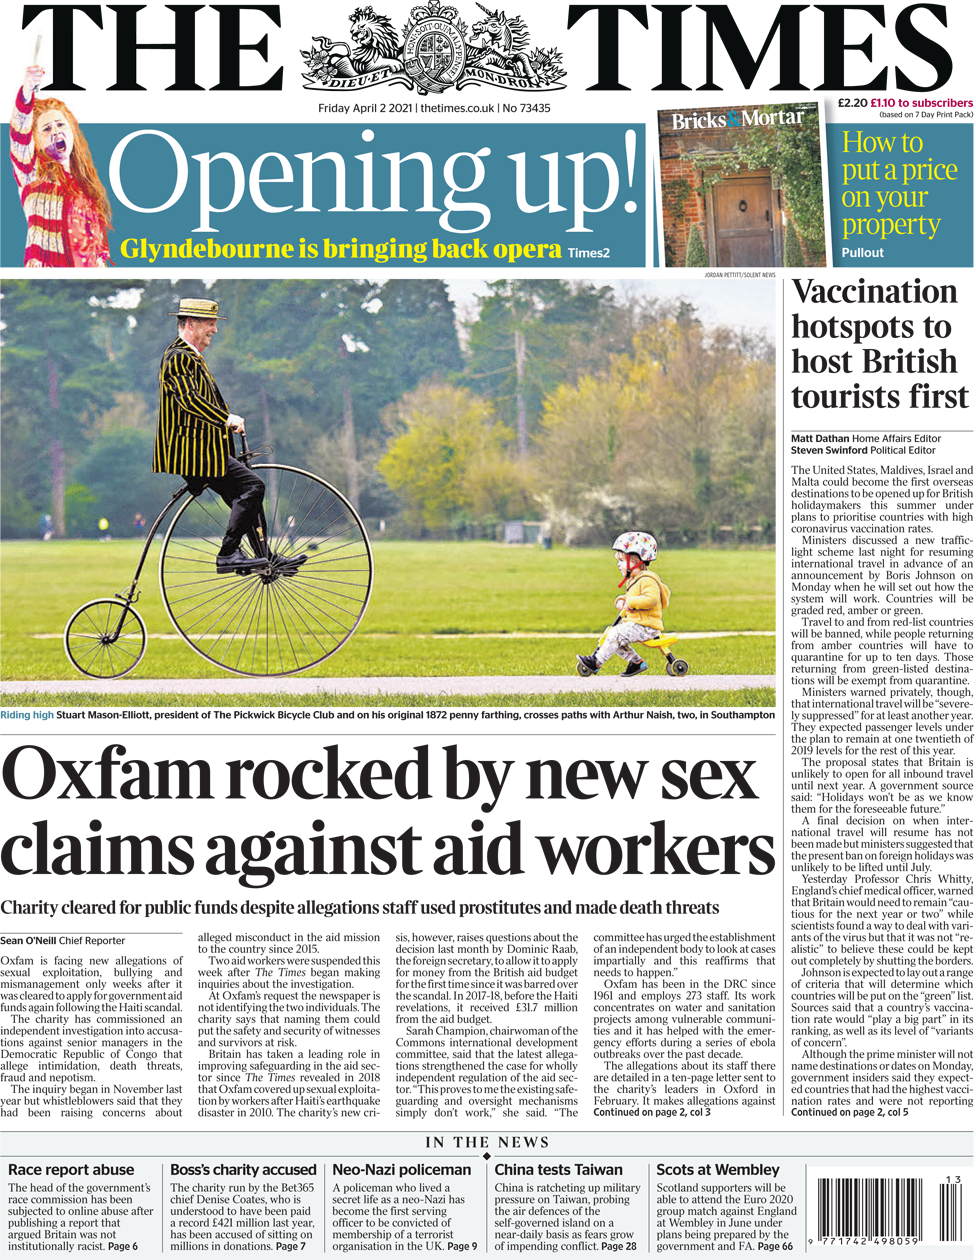 The Times front page 2 April 2021